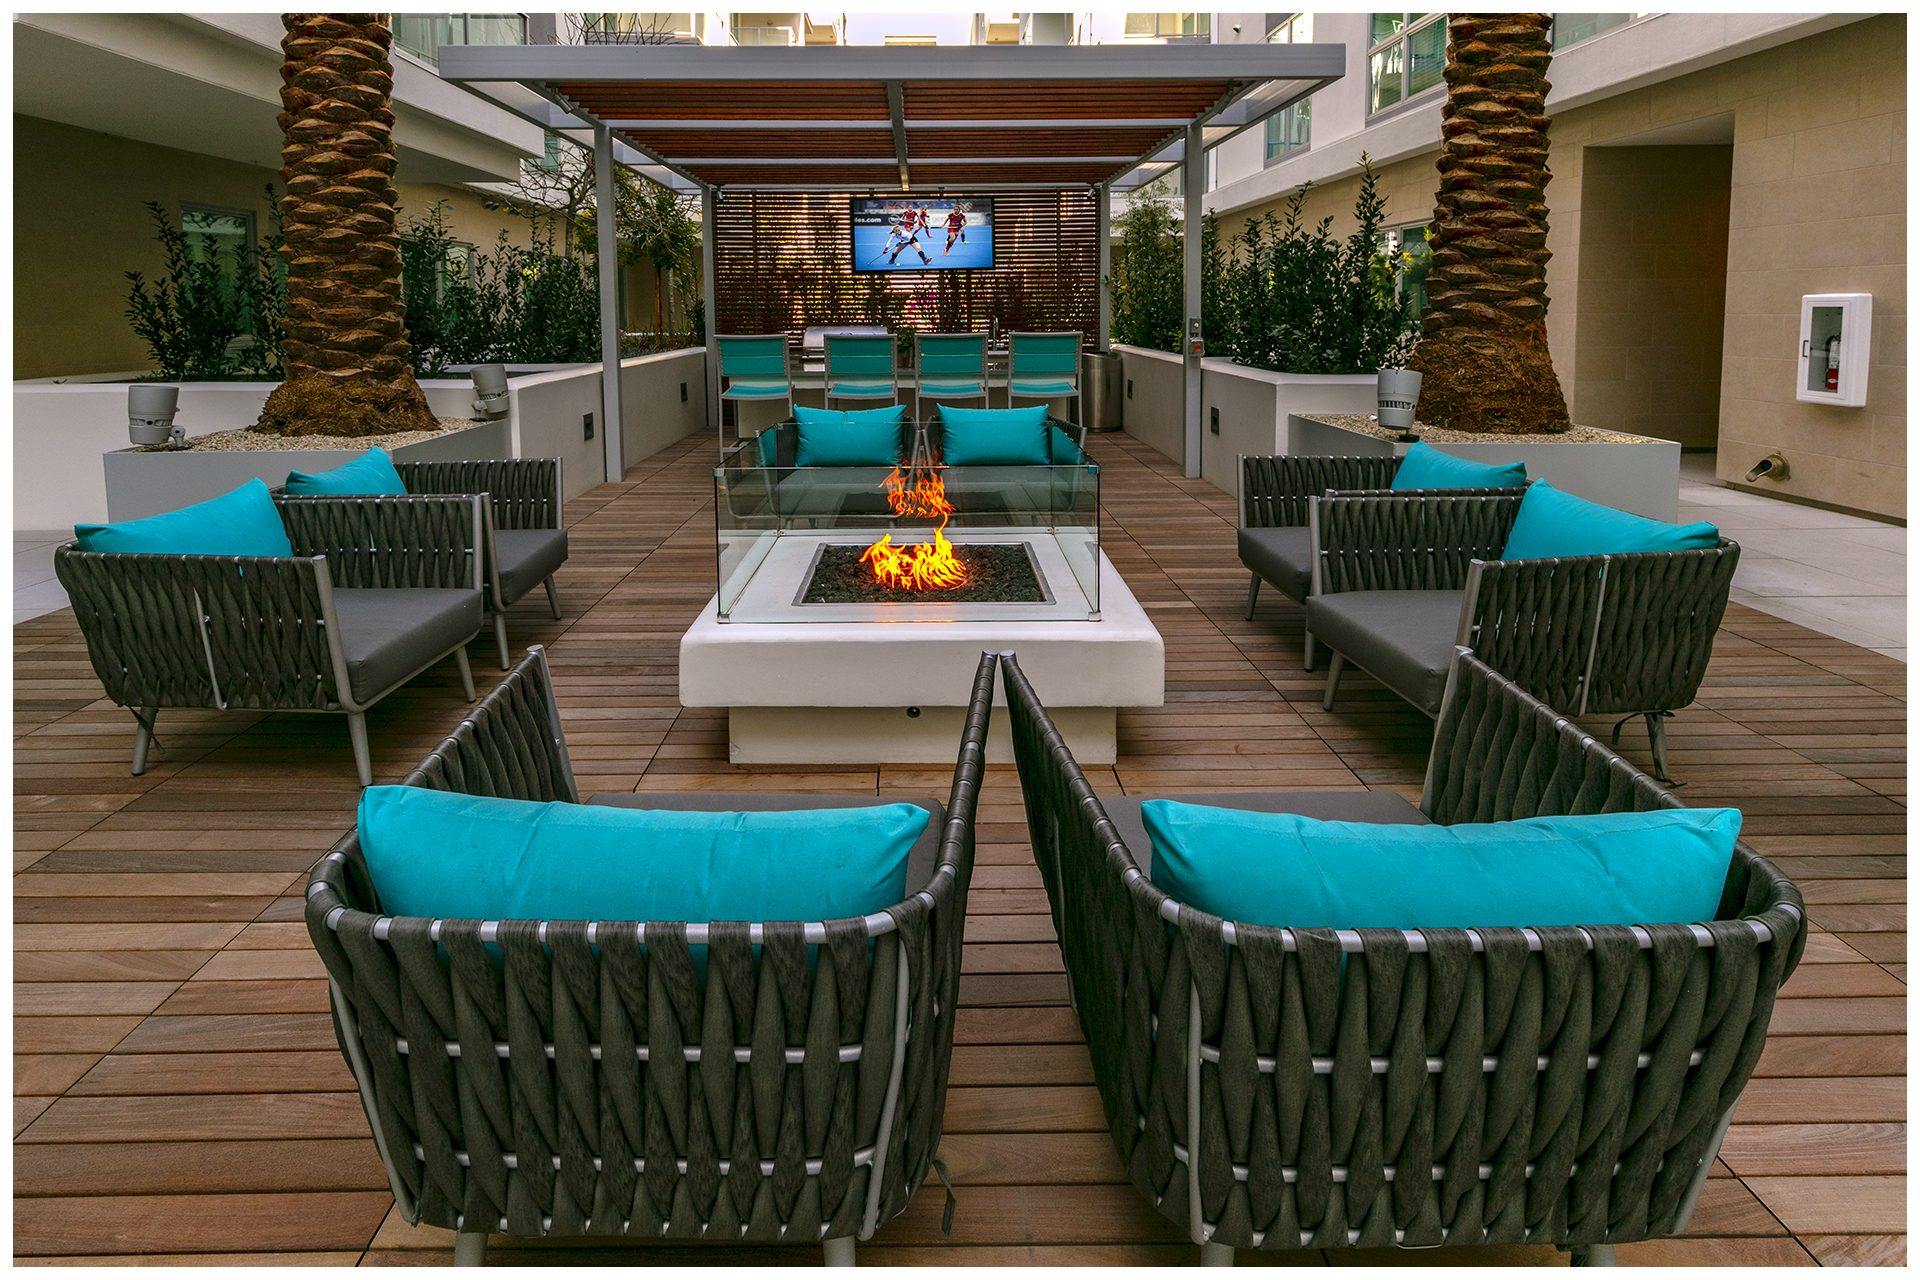 COURTYARD, POOL AREA, & SKY BRIDGE PROVISIONSCourtyard, Pool Area, & Sky Deck Audio Video & WiFi. Audio Video provisions are controlled via a nearby wall-mounted iPad and remotely from leasing office iPad. Local iPad allows a limited range of volume change for music.